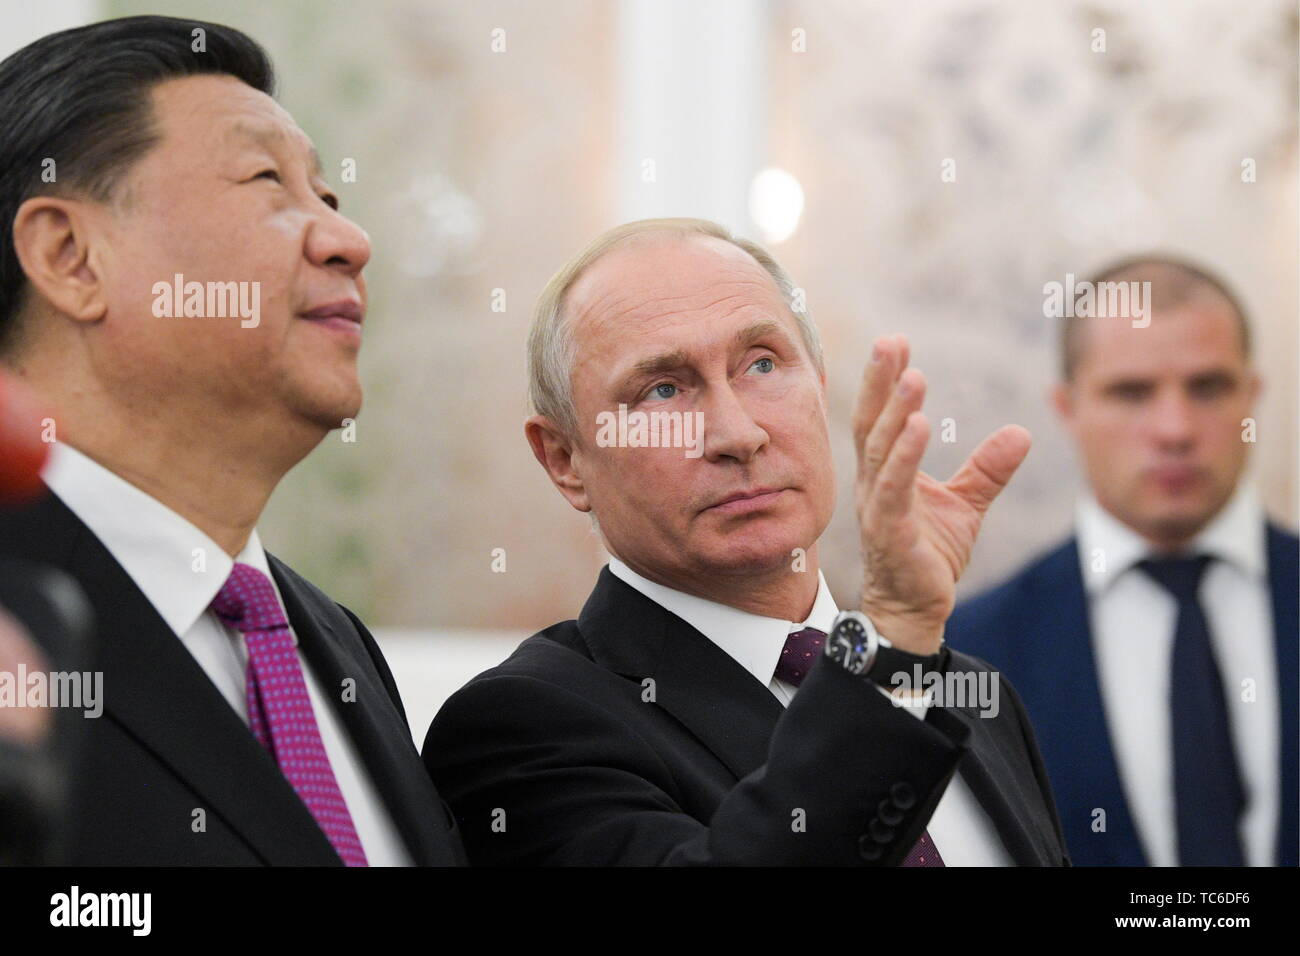 Moscow, Russia. 05th June, 2019. MOSCOW, RUSSIA - JUNE 5, 2019: China's President Xi Jinping (L) and Russia's President Vladimir Putin during a meeting at the Moscow Kremlin. Alexei Druzhinin/Russian Presidential Press and Information Office/TASS Credit: ITAR-TASS News Agency/Alamy Live News - Stock Image